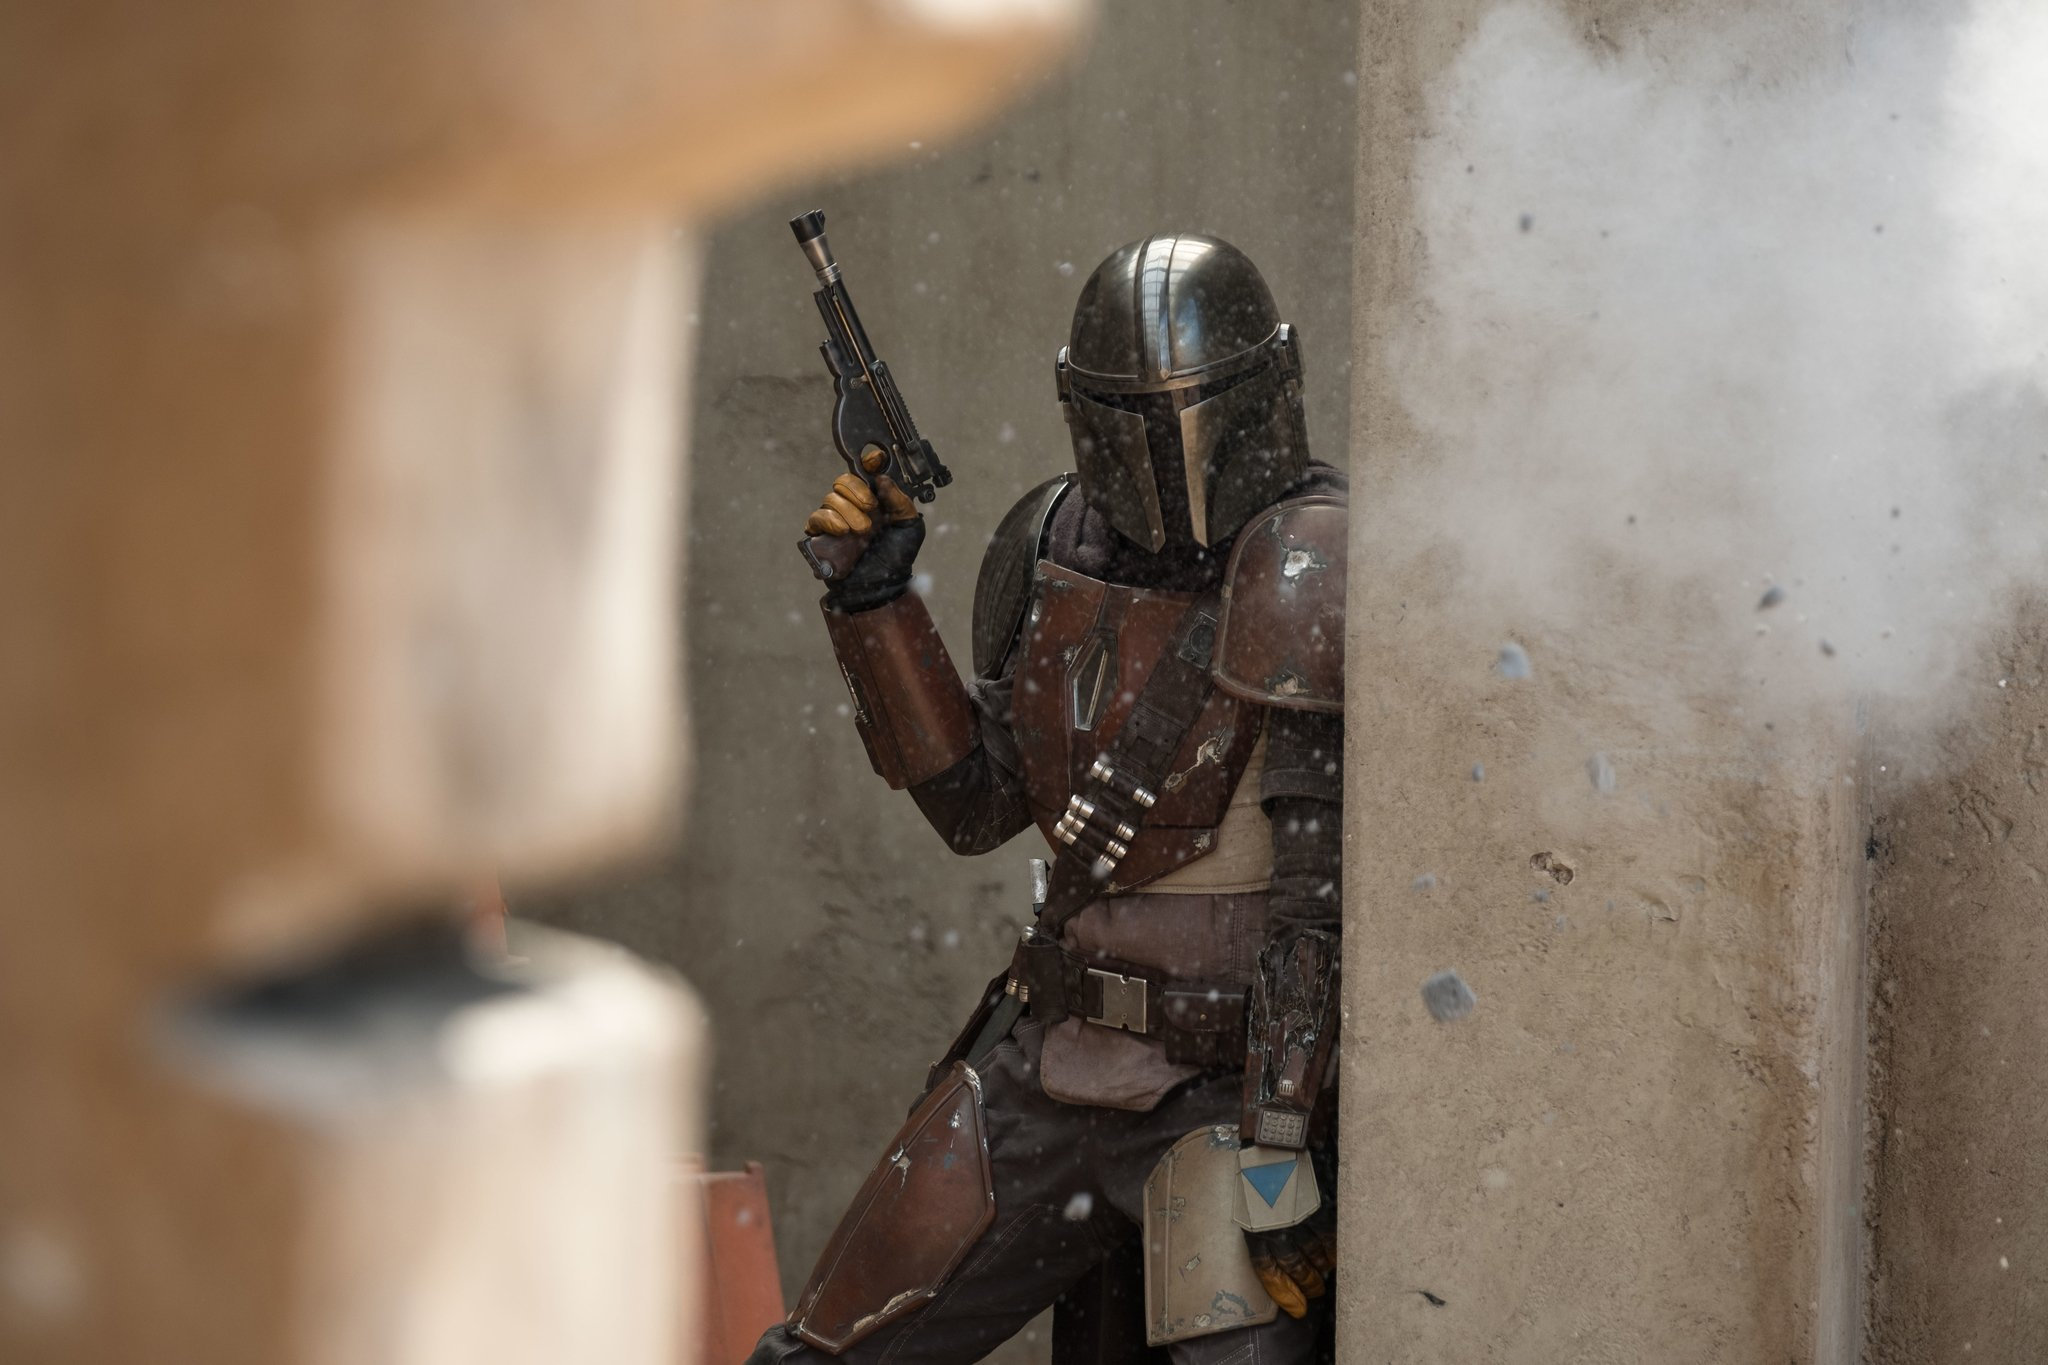 'The Mandalorian' blasts 'Star Wars' into the streaming frontier